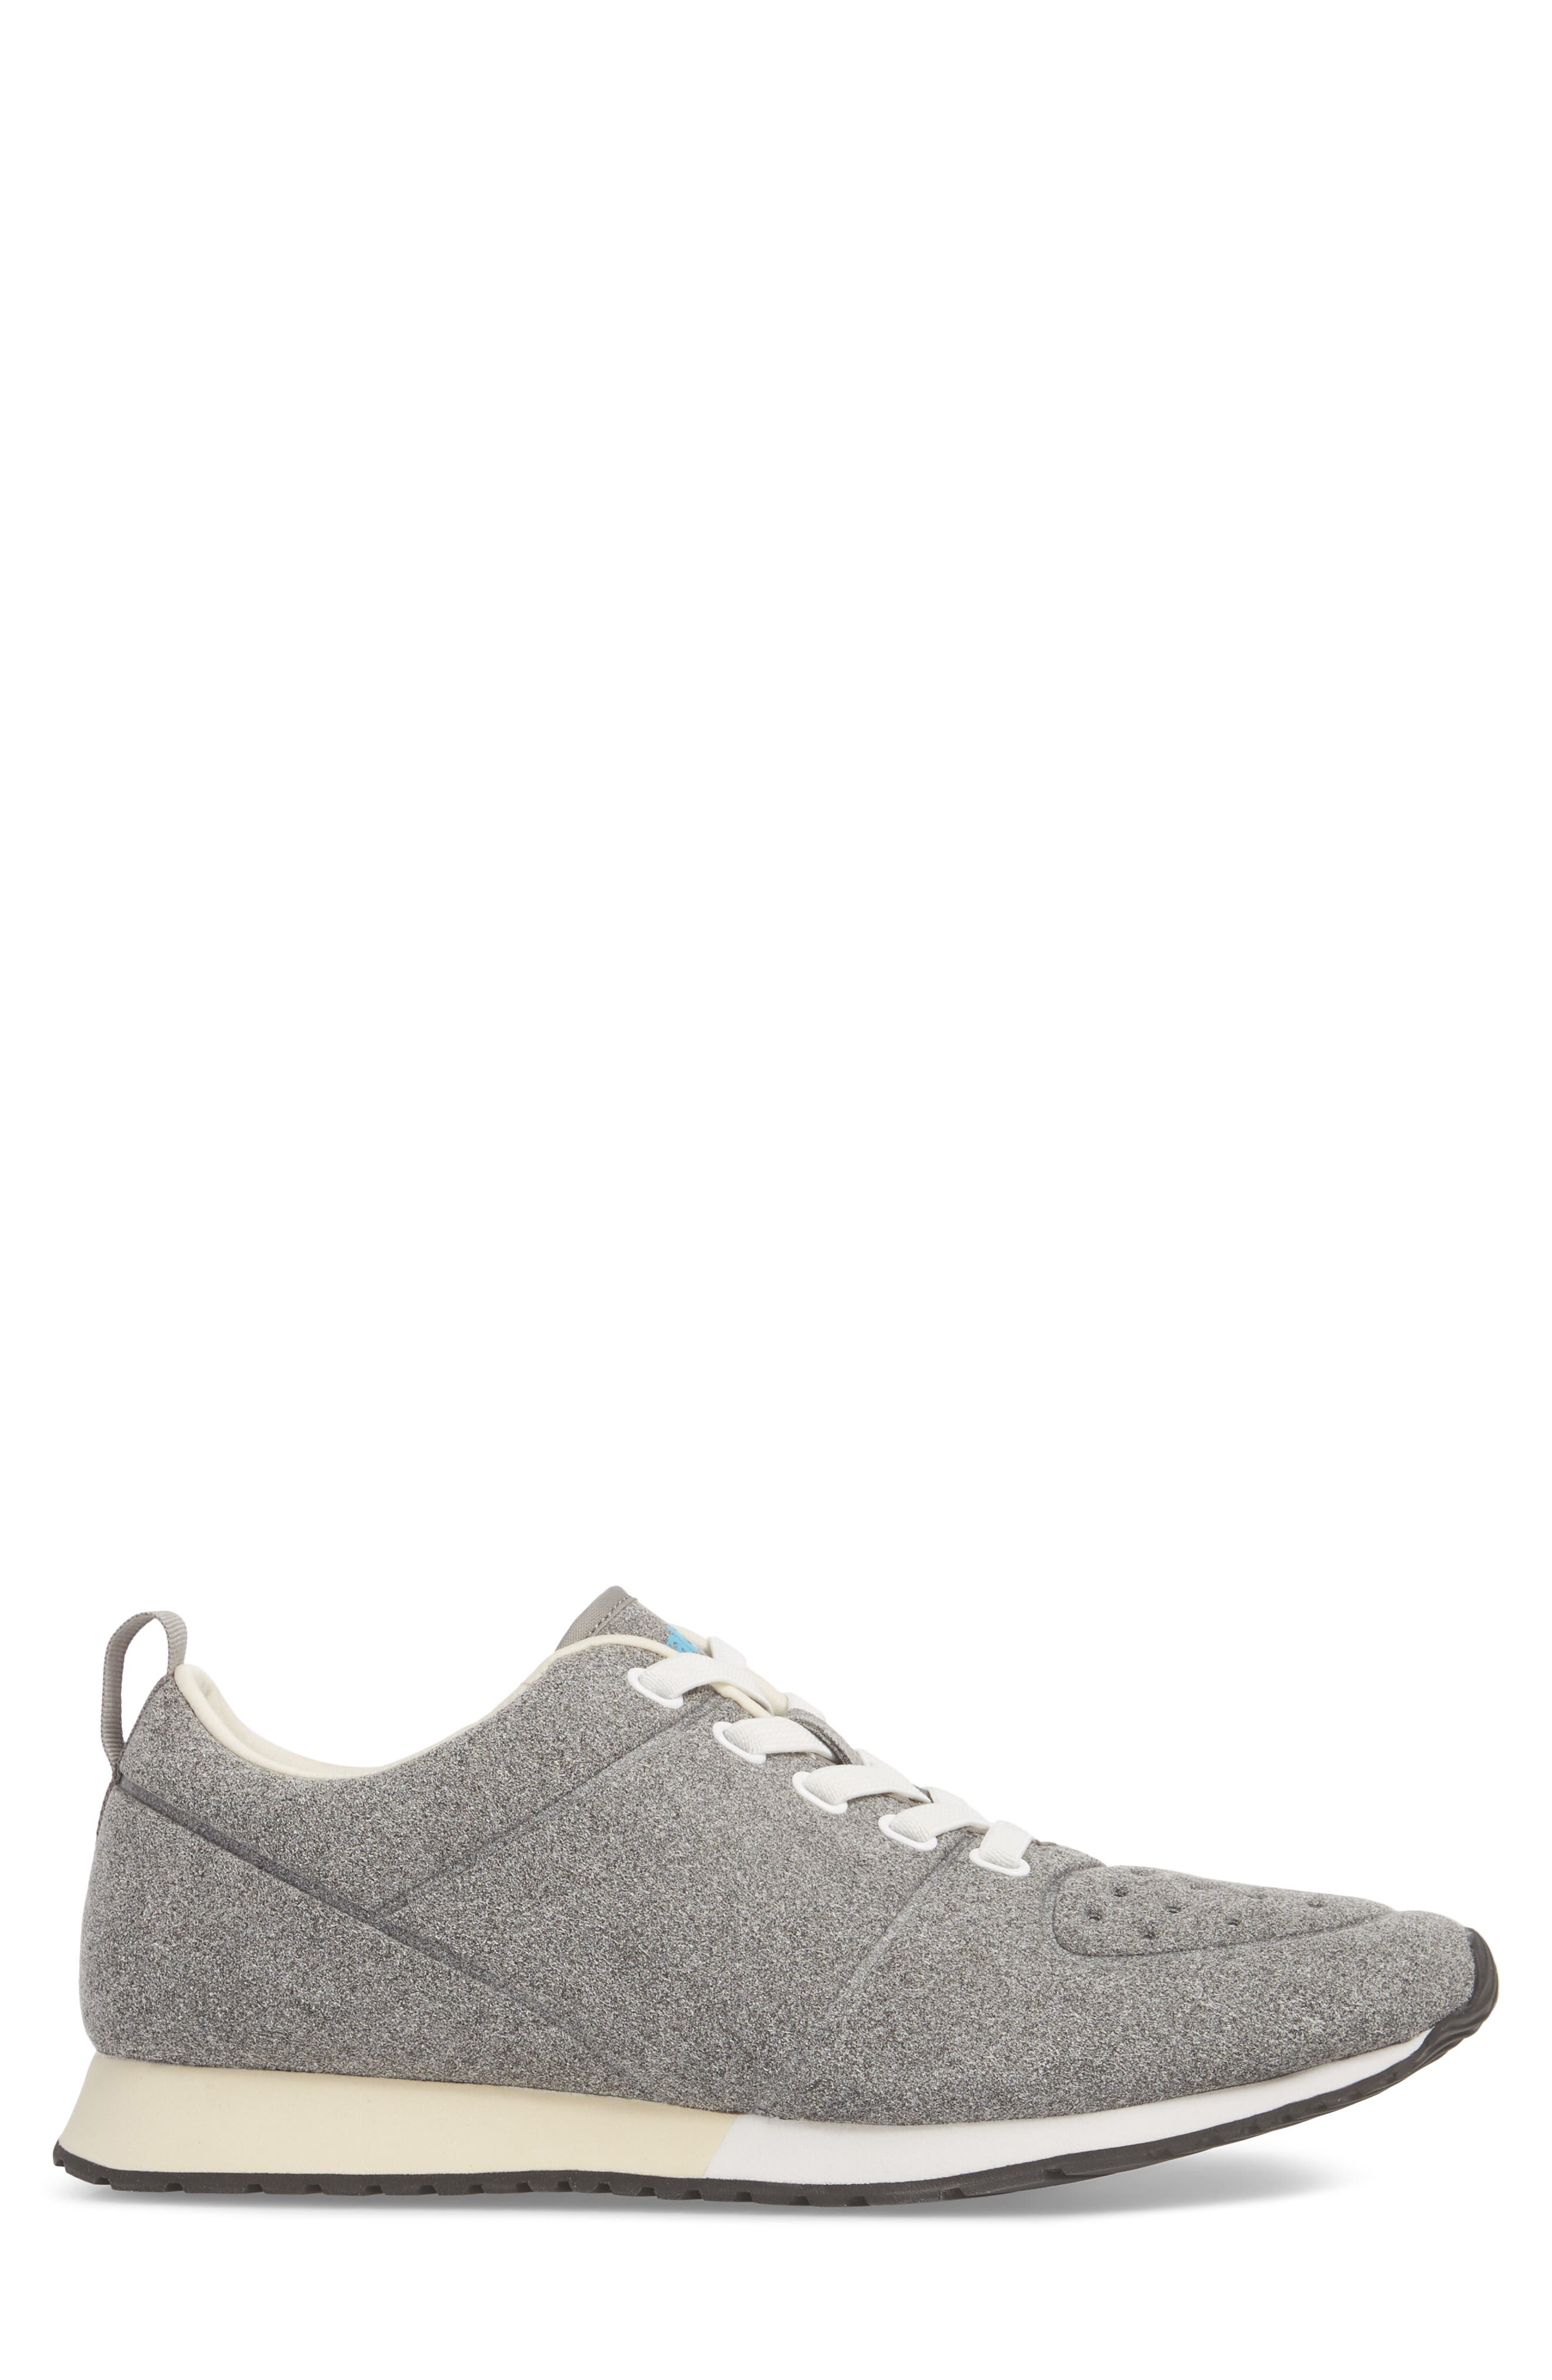 Cornell Perforated Sneaker,                             Alternate thumbnail 3, color,                             PIGEON GREY/ SHELL WHITE